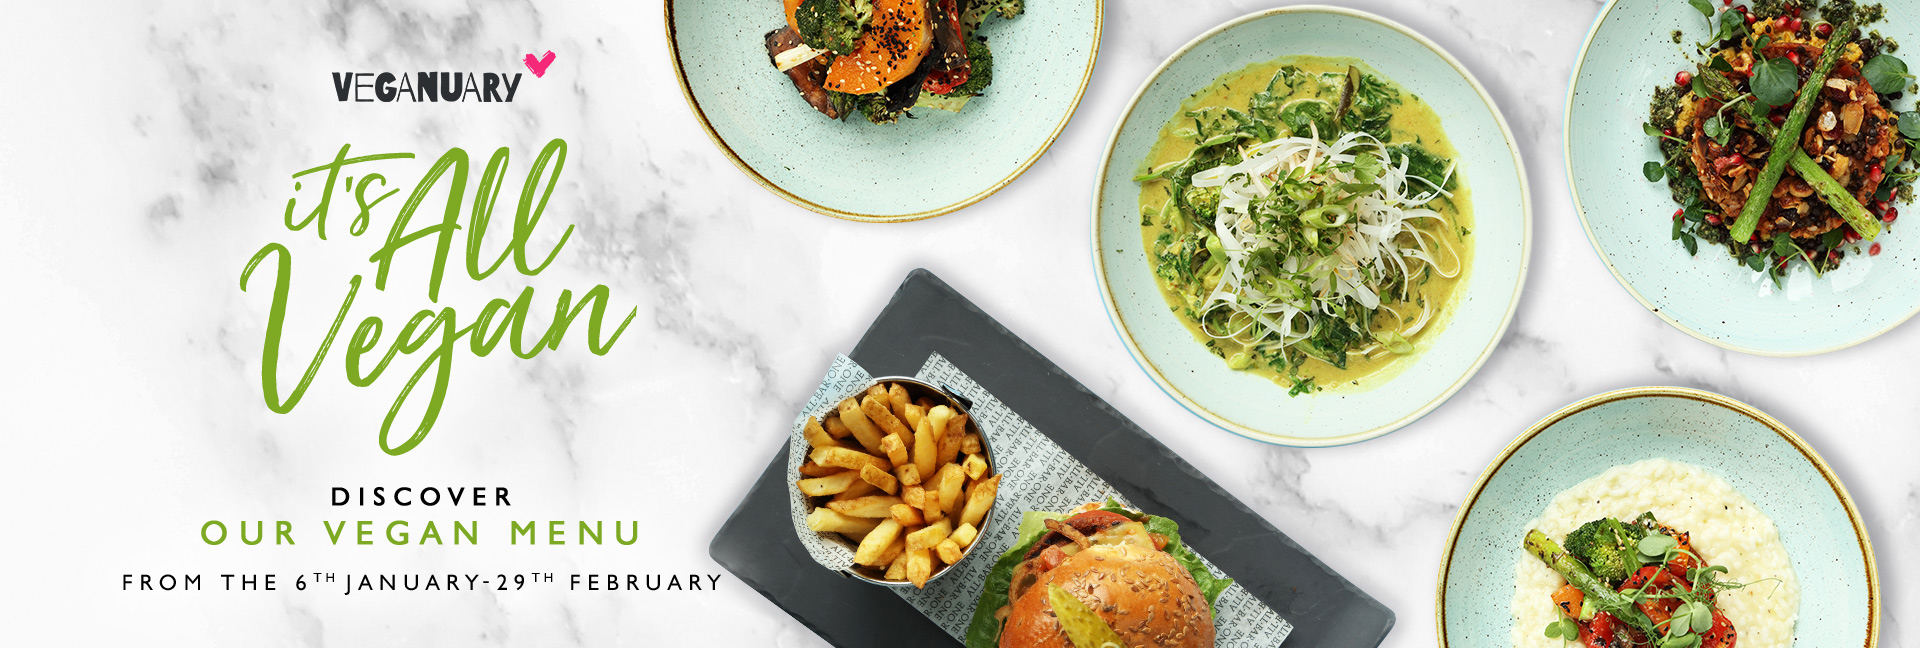 Veganuary Menu at All Bar One Liverpool Street